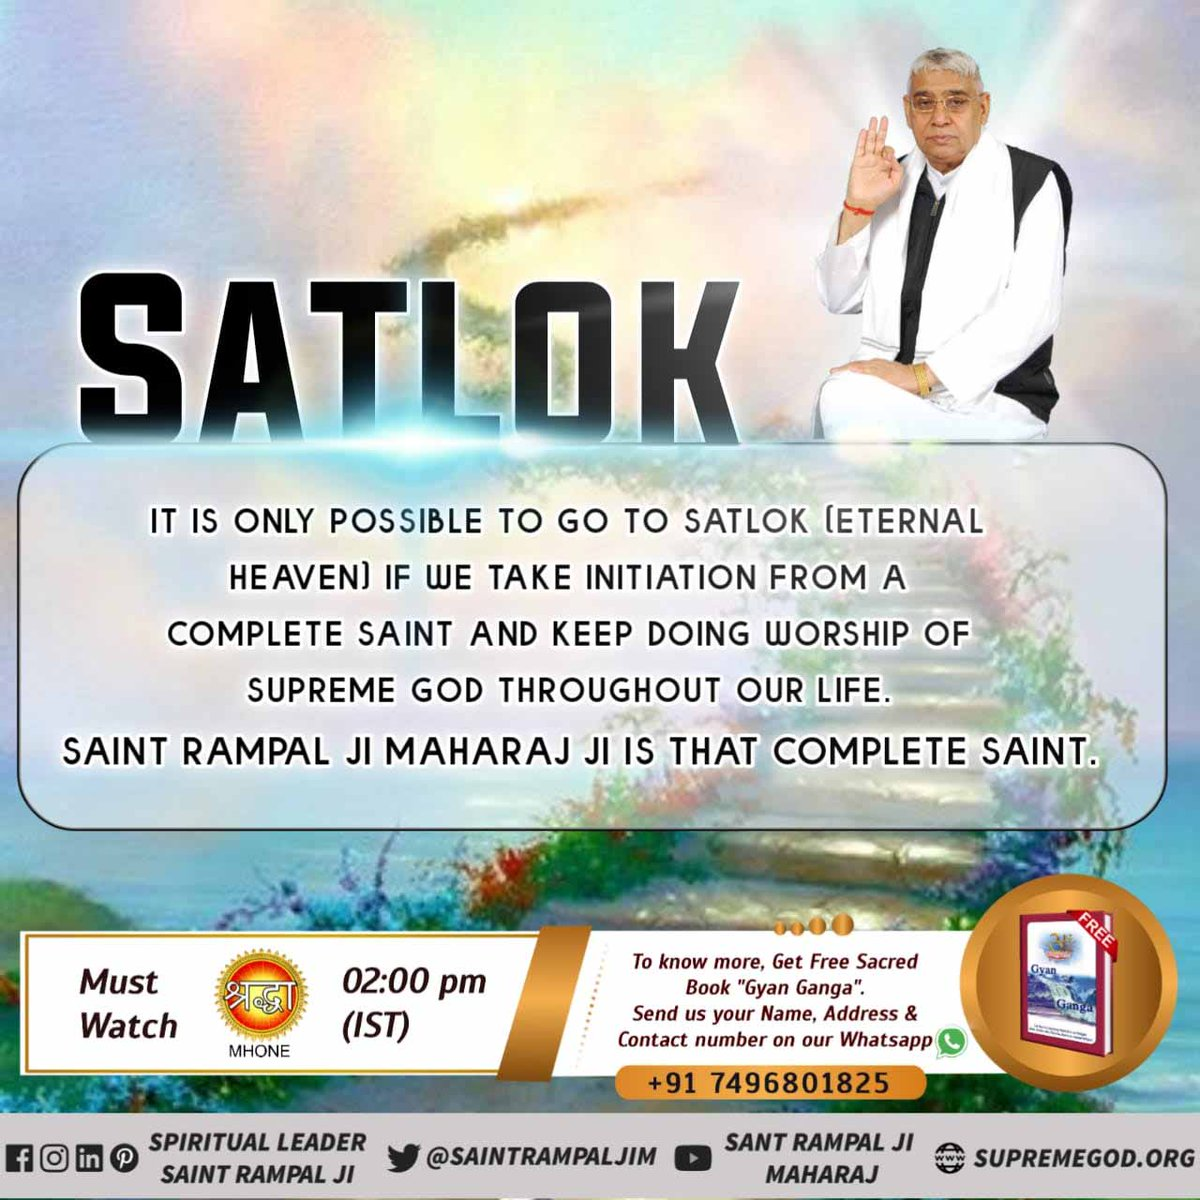 #MondayMotivation #mondaythoughts According to Gita Ji Chapter 8 Verse 16, all the worlds from earth to Brahmaloka are in repetition. But Satlok is the immortal place, where the seeker's birth and death do not take place.@SaintRampalJiM @SaintRampalJiM